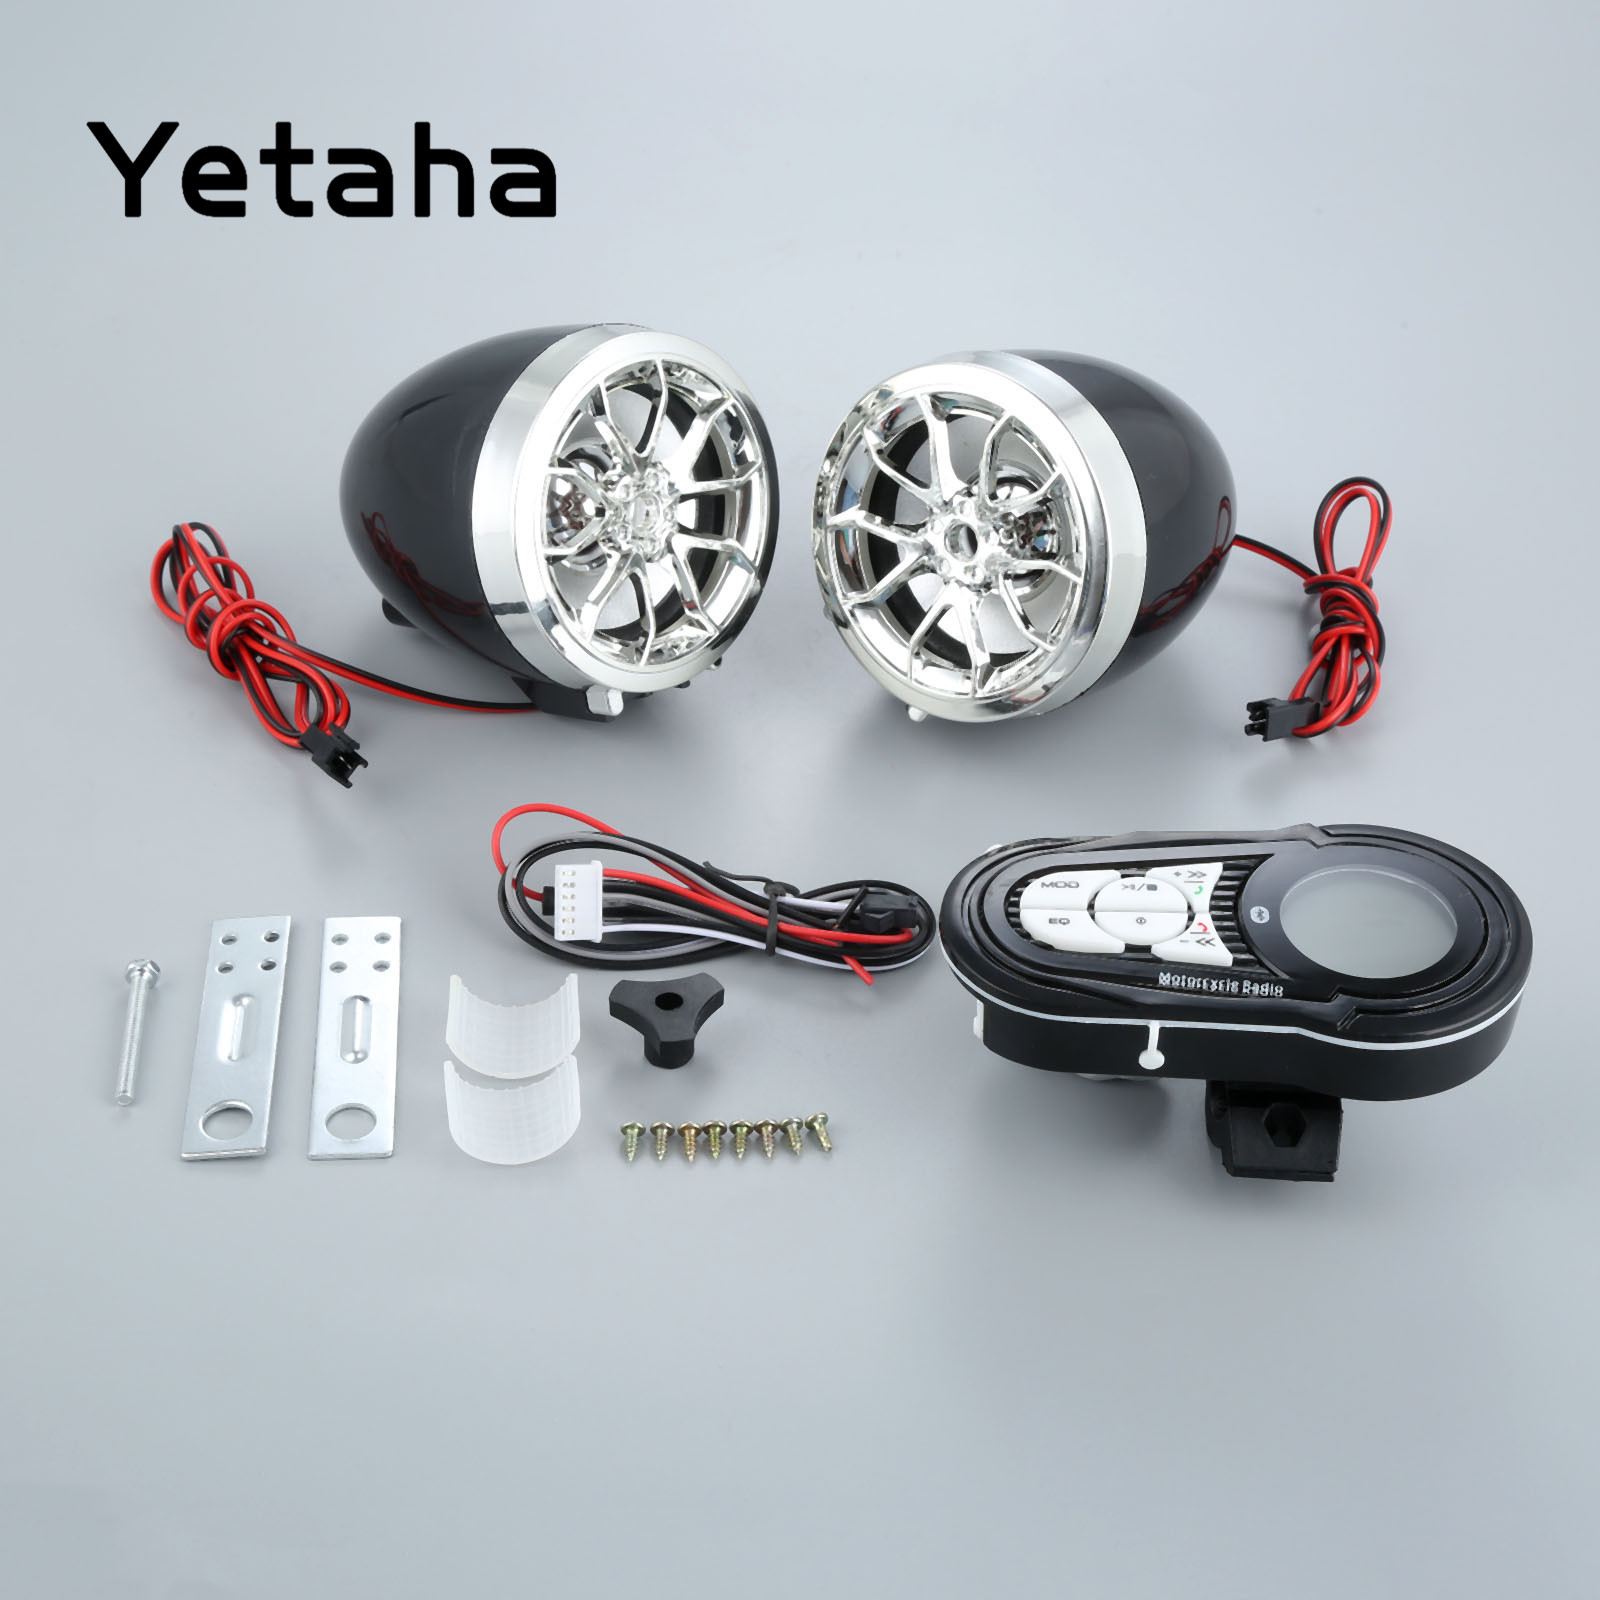 Yetaha Motorcycle Bluetooth Audio System 12V 15W Mp3 Player Waterproof Moto Speakers Support USB TF Card Carrier Charging Phone